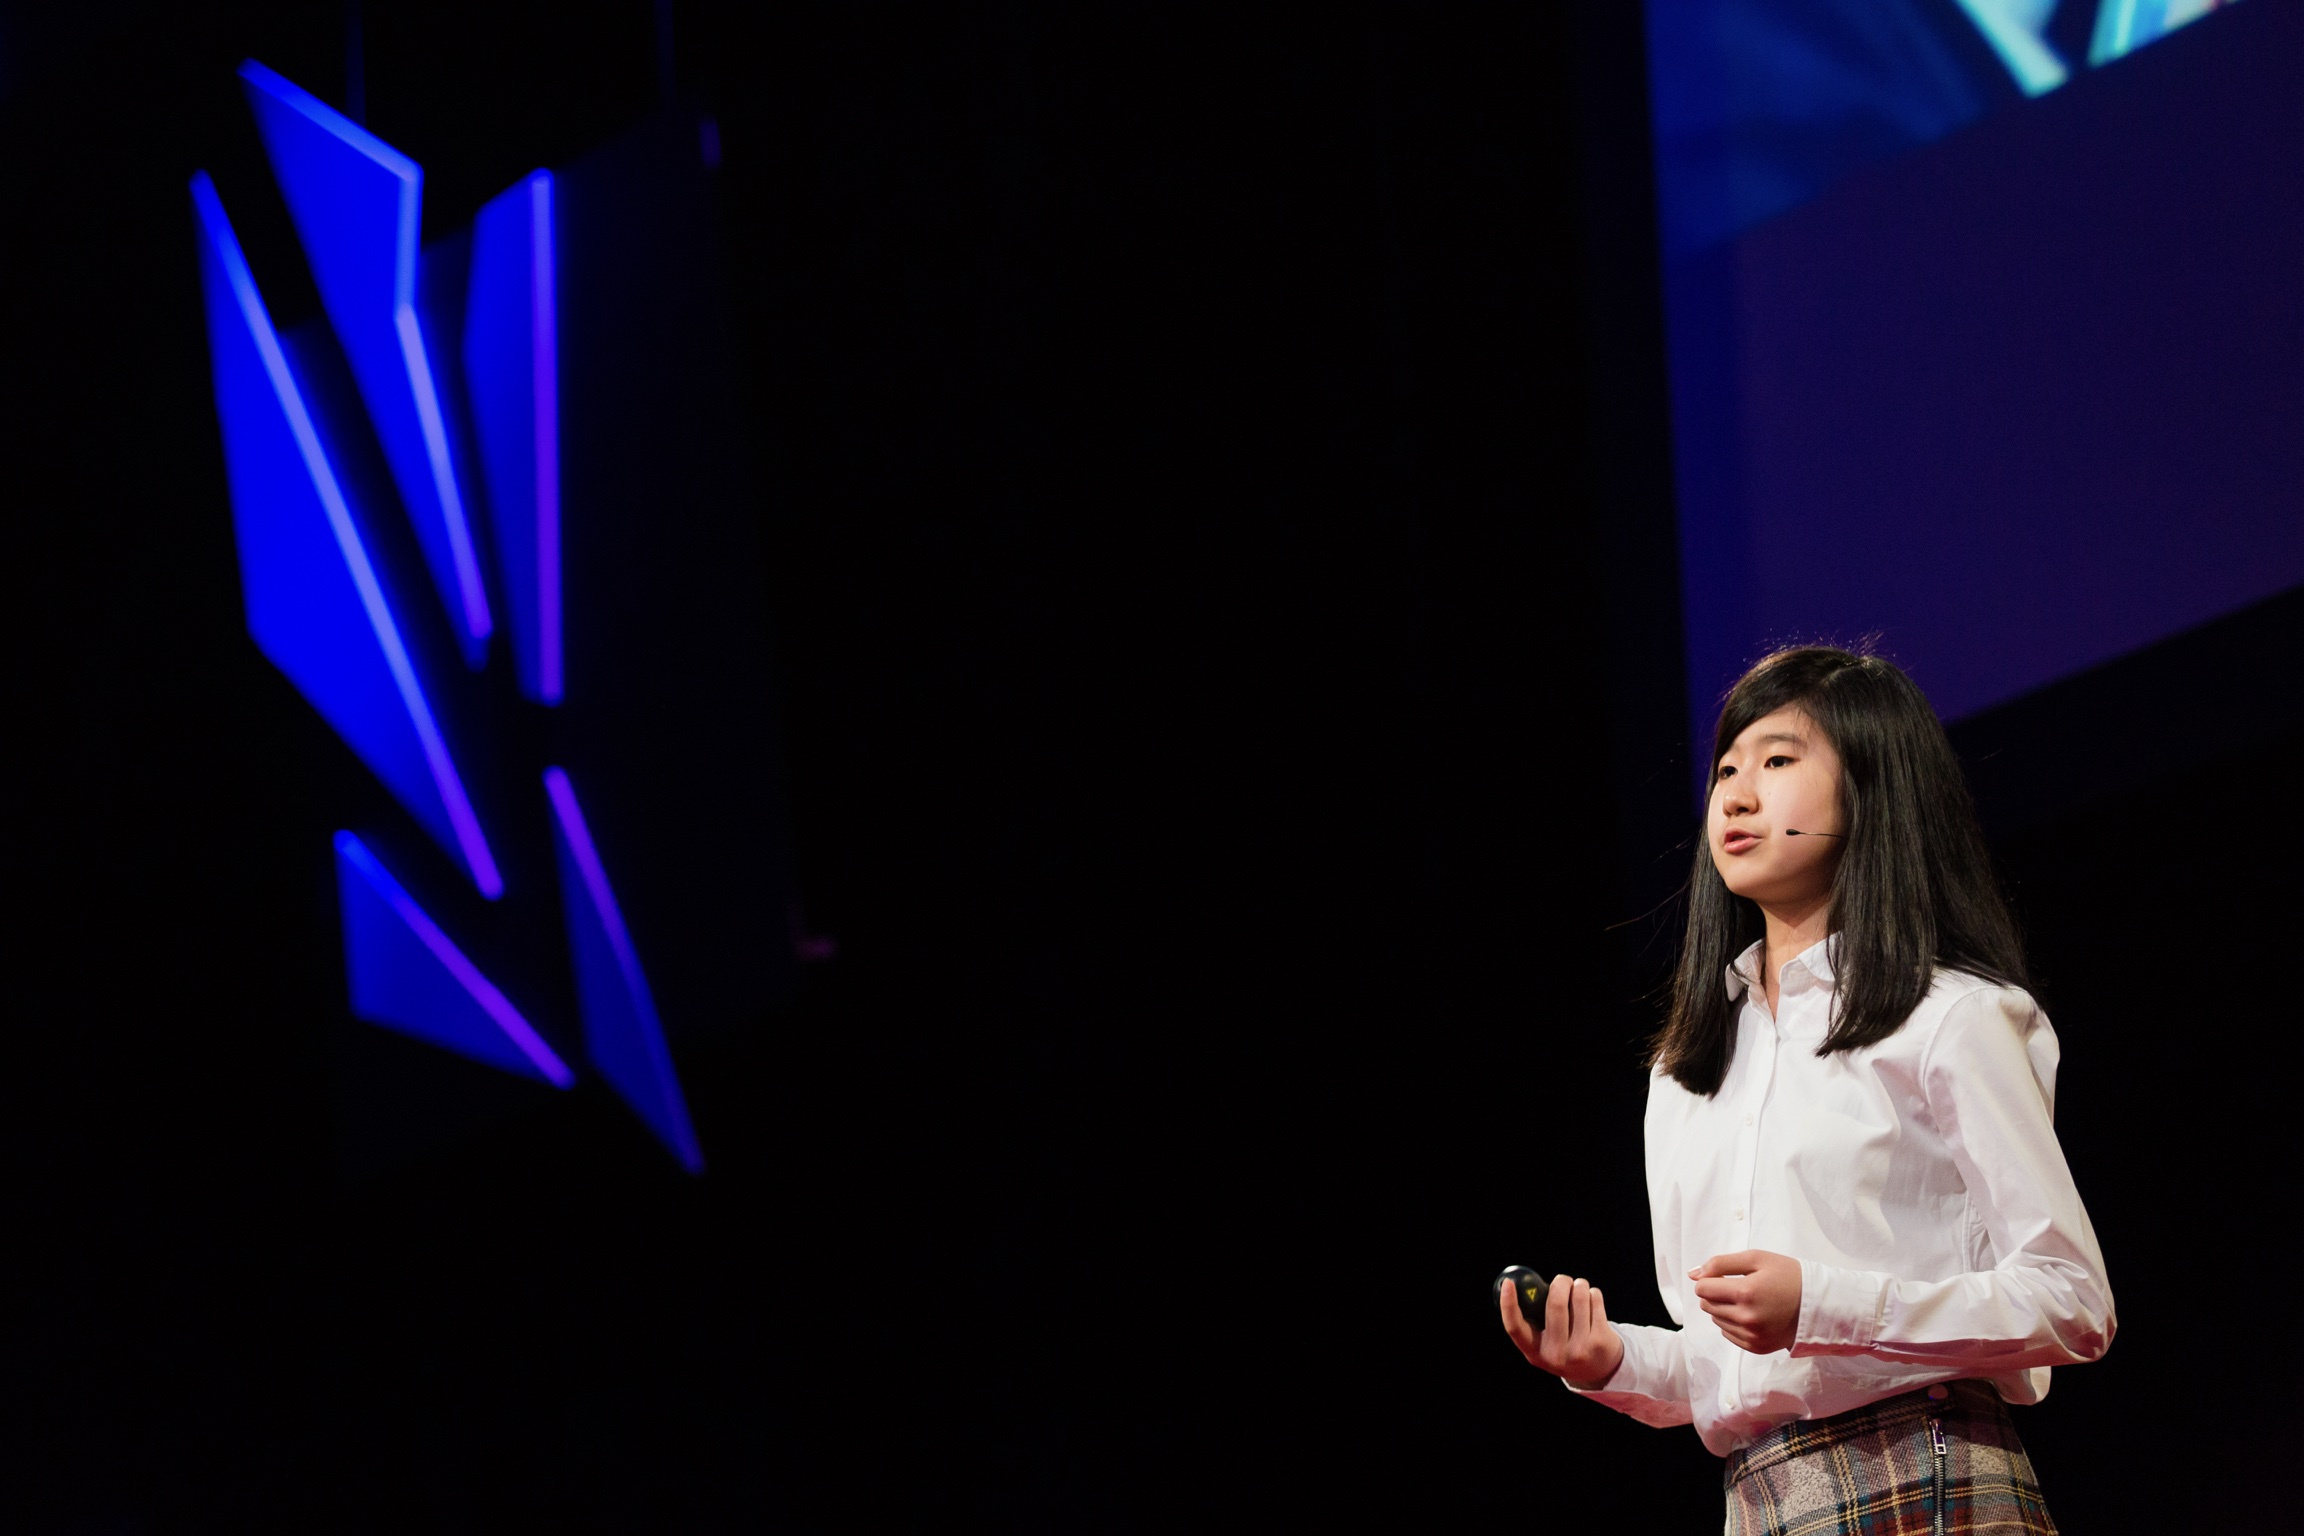 Emma Yang, founder of Timeless, shares a presentation at TEDxFoggyBottom in Washington, D.C.